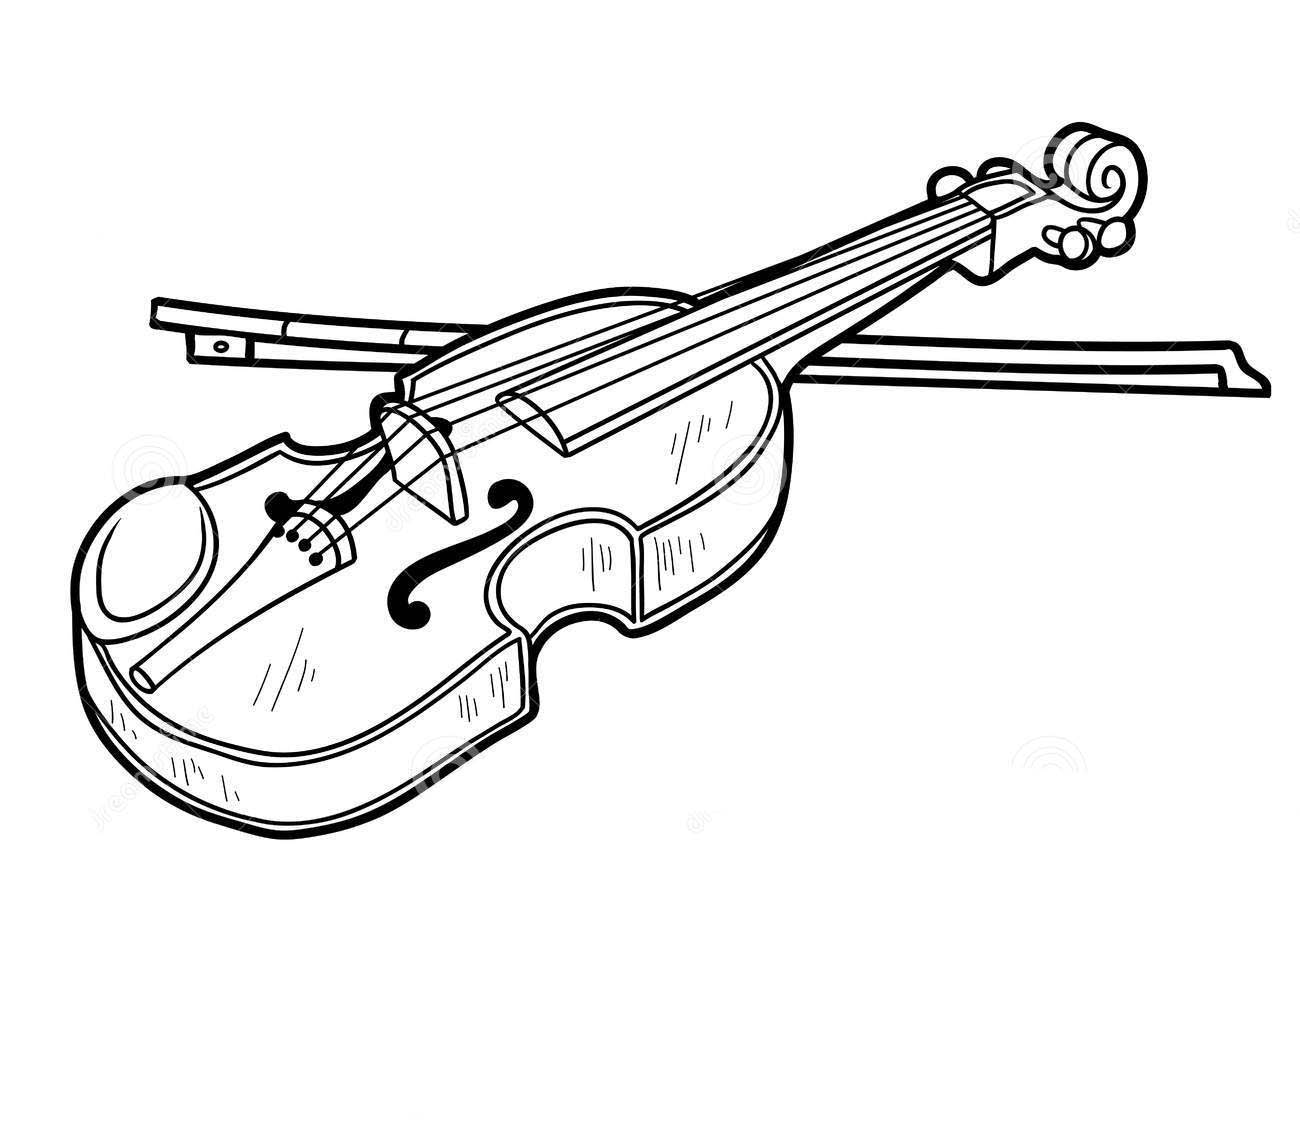 Musical instruments coloring pages to download and print for free